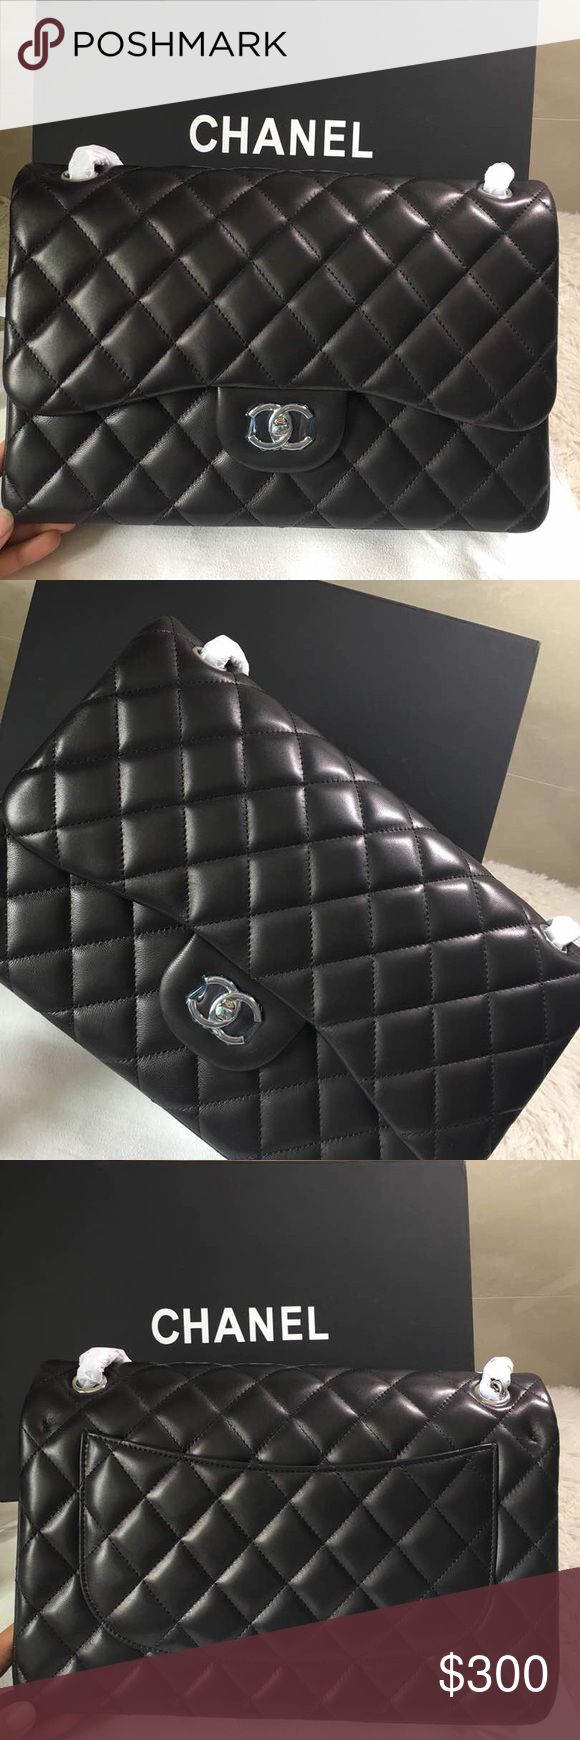 Chanel jumbo flap bag BRAND NEW  COME WITH DUST BAG BOX AND AUTHENTICITY CARD  REAL LEATHER  NOT AUTHENTIIIIIIIIC  ONLY SOLD OFF OF PM FOR SERIOUS INQUIRIES OR PURCHASE  CONTACT ME  luxurybaggal202@gmail.com CHANEL Bags